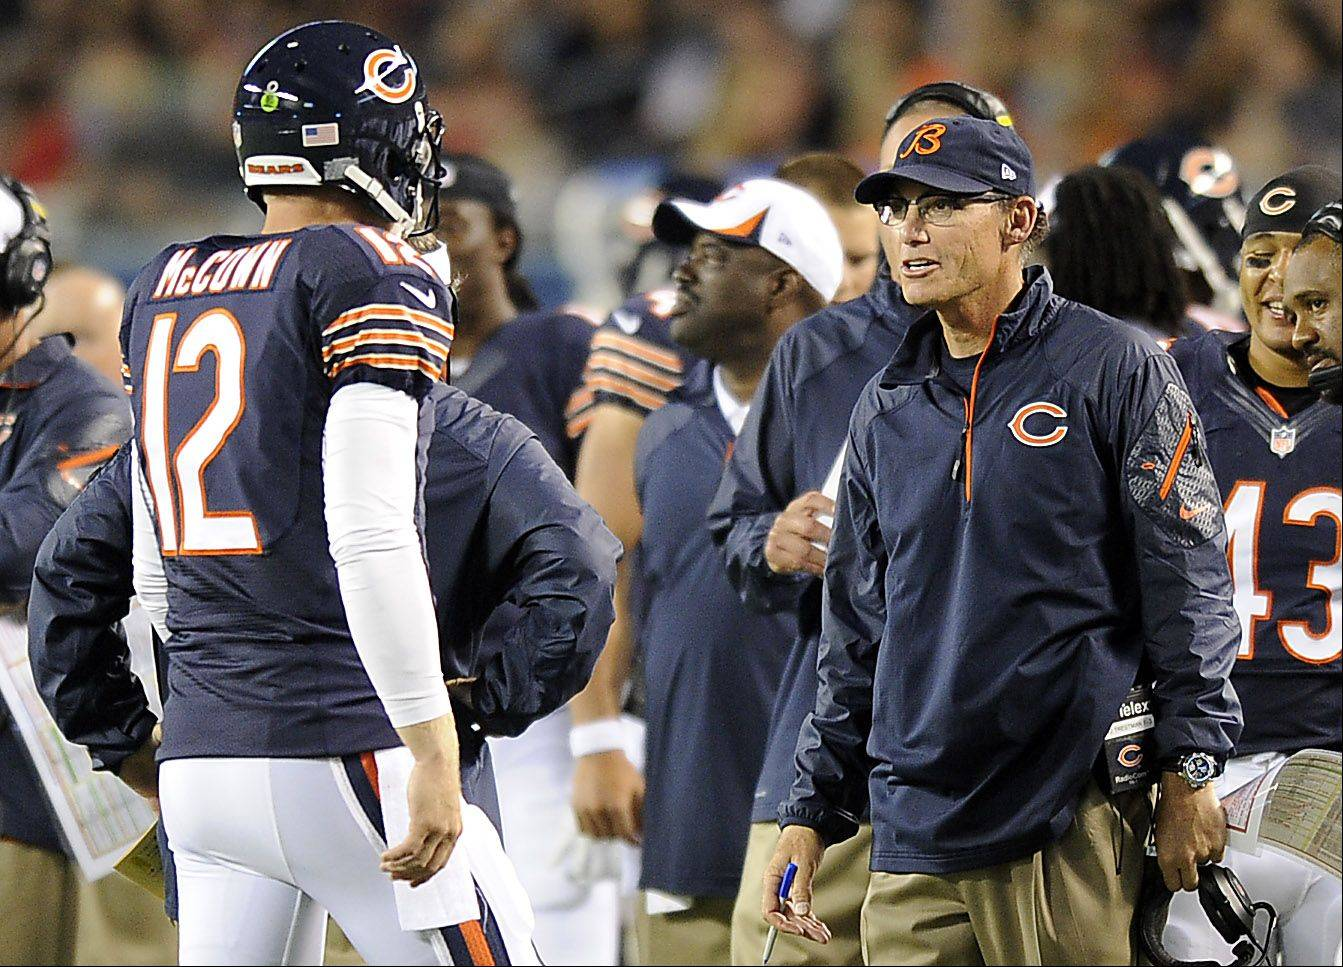 Chicago Bears head coach Marc Trestman talks with Bears quarterback Josh McCown.